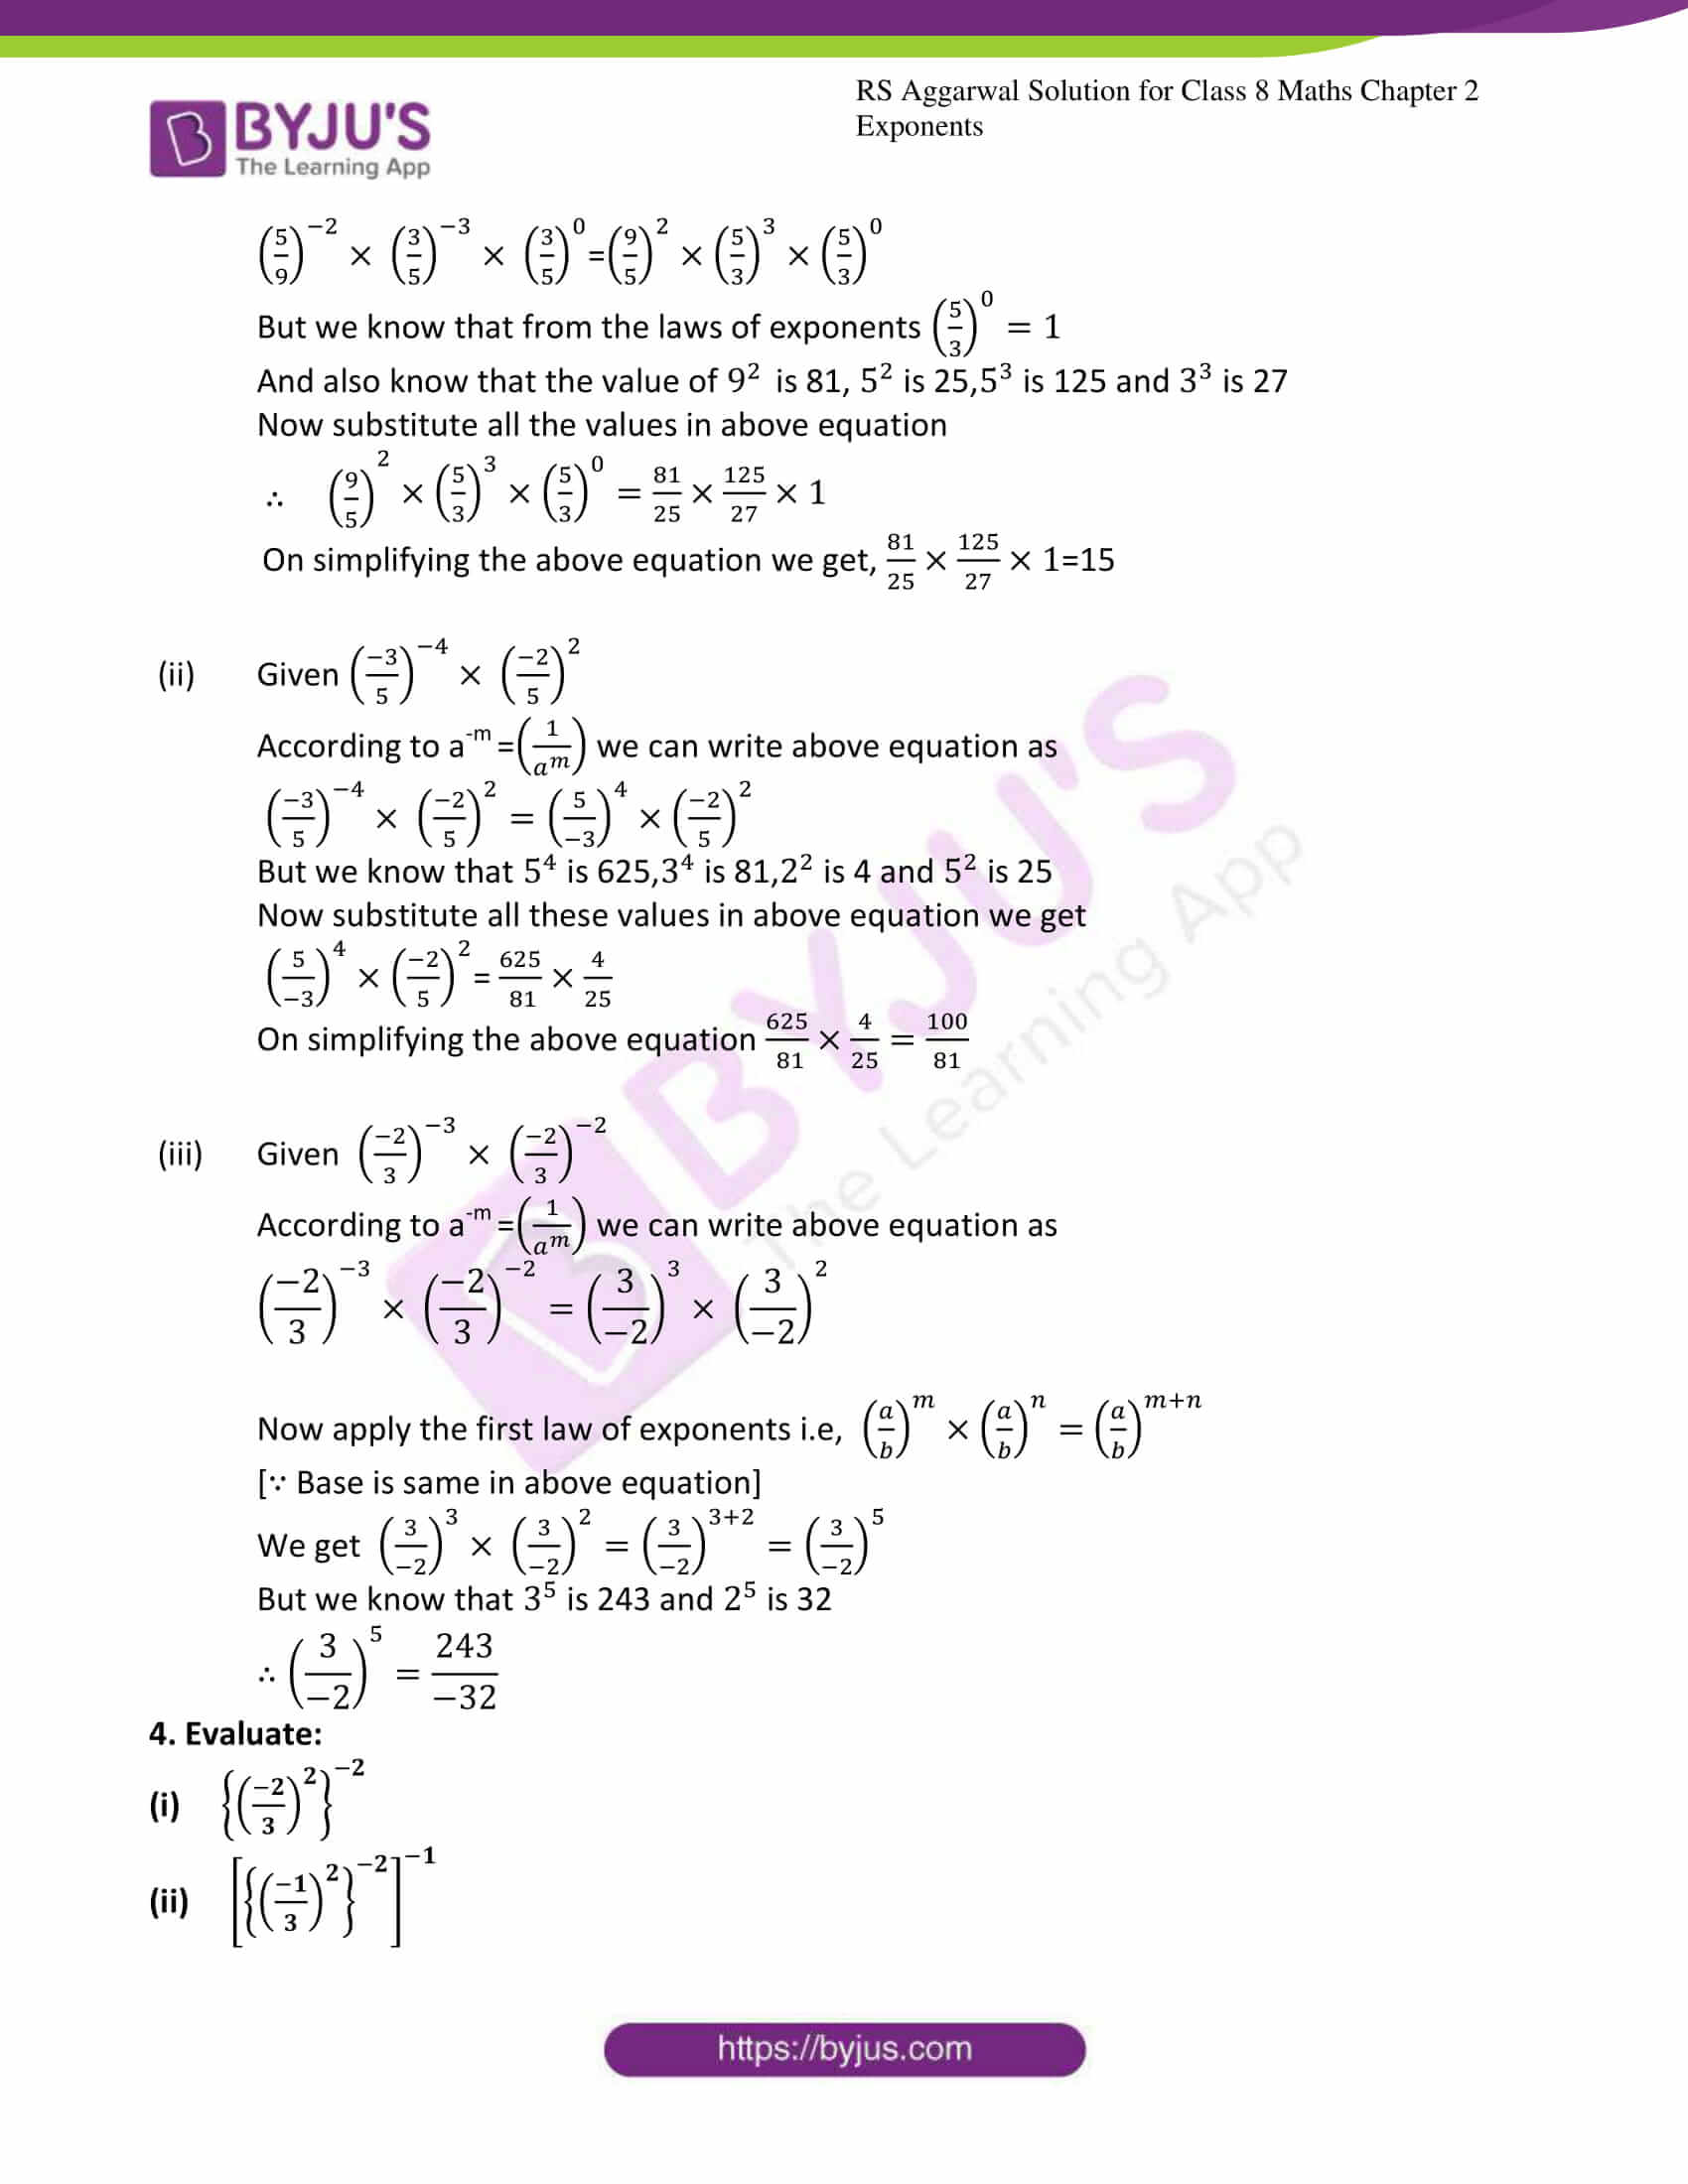 rs aggarwal solution for class 8 maths chapter 2 ex a 4